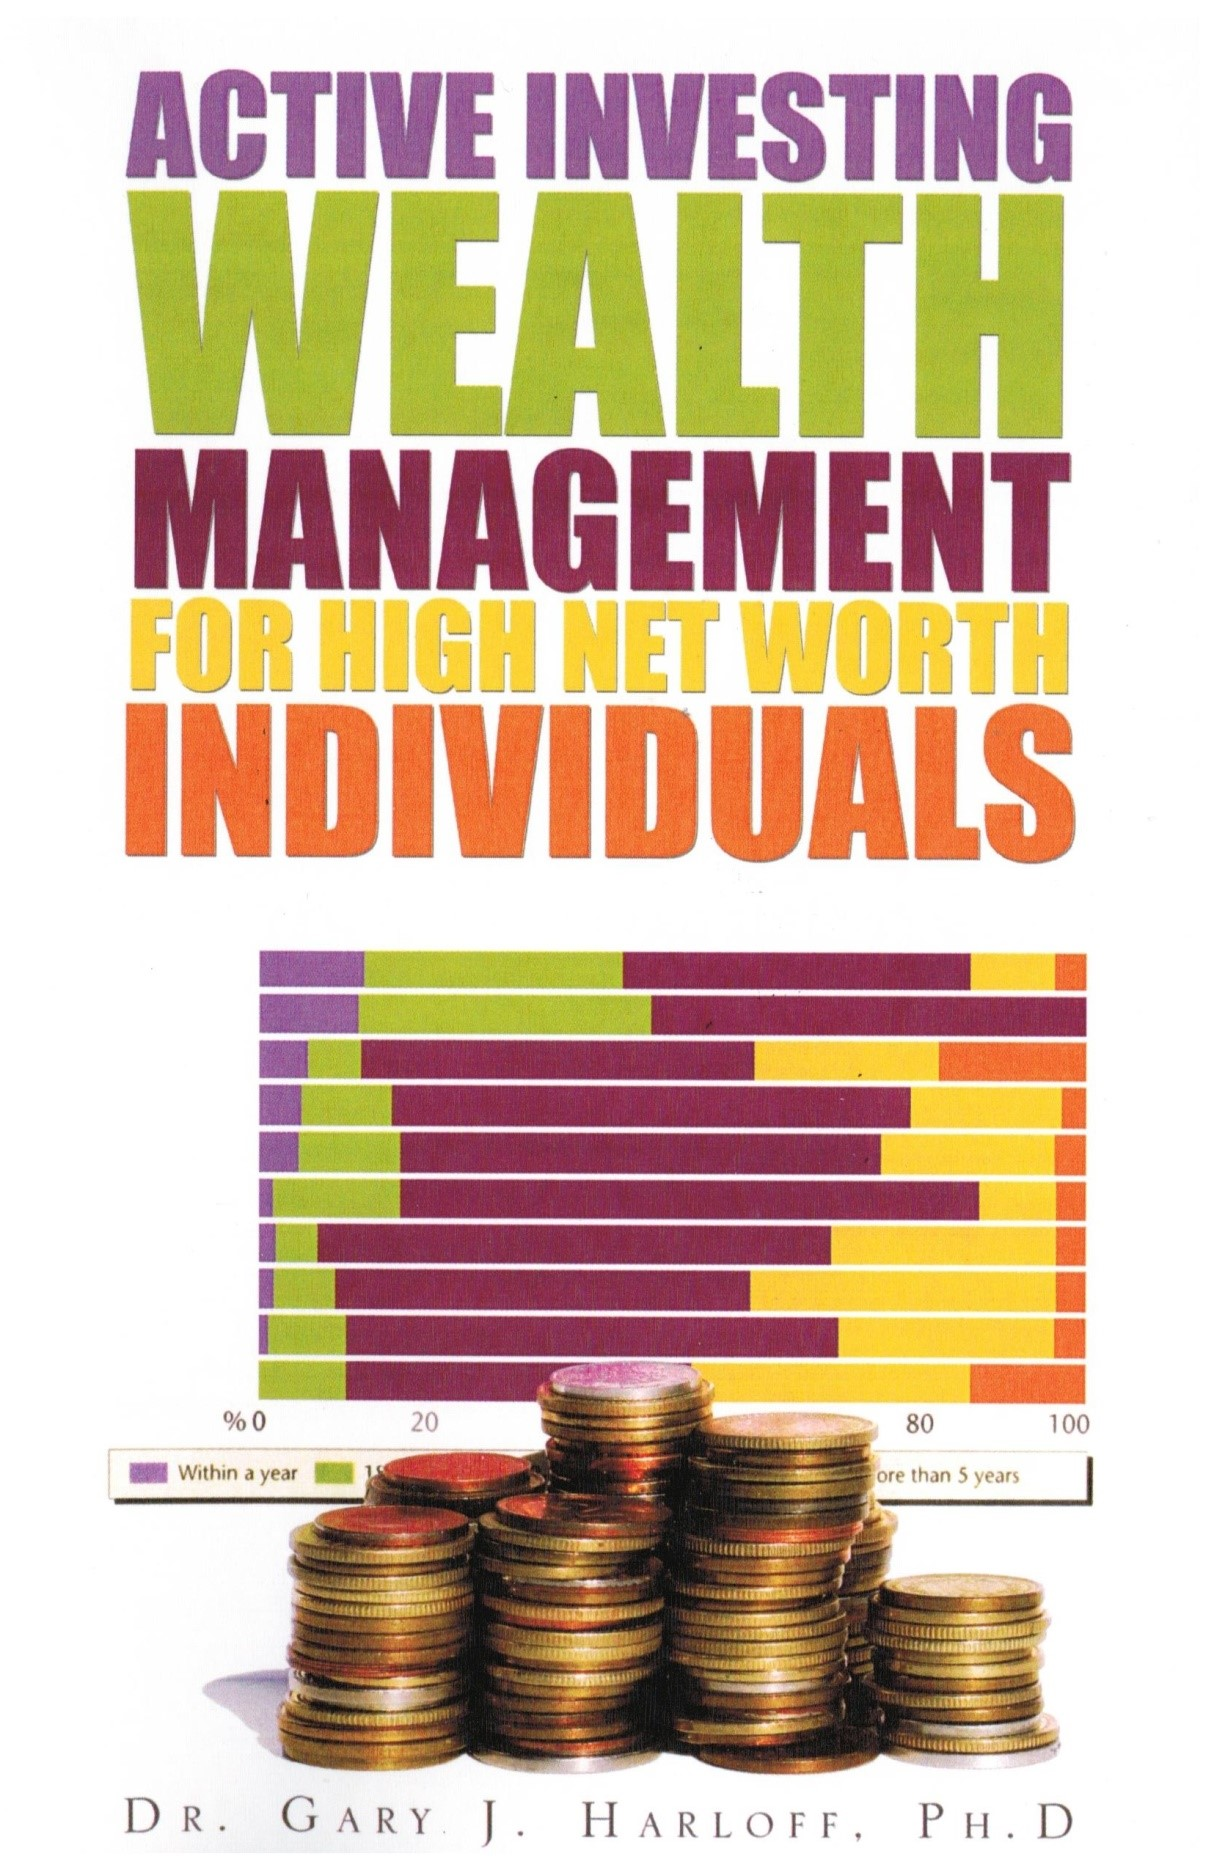 Active Investing Wealth Management for High Net Worth Individuals by Dr. Gary J. Harloff, Ph. D